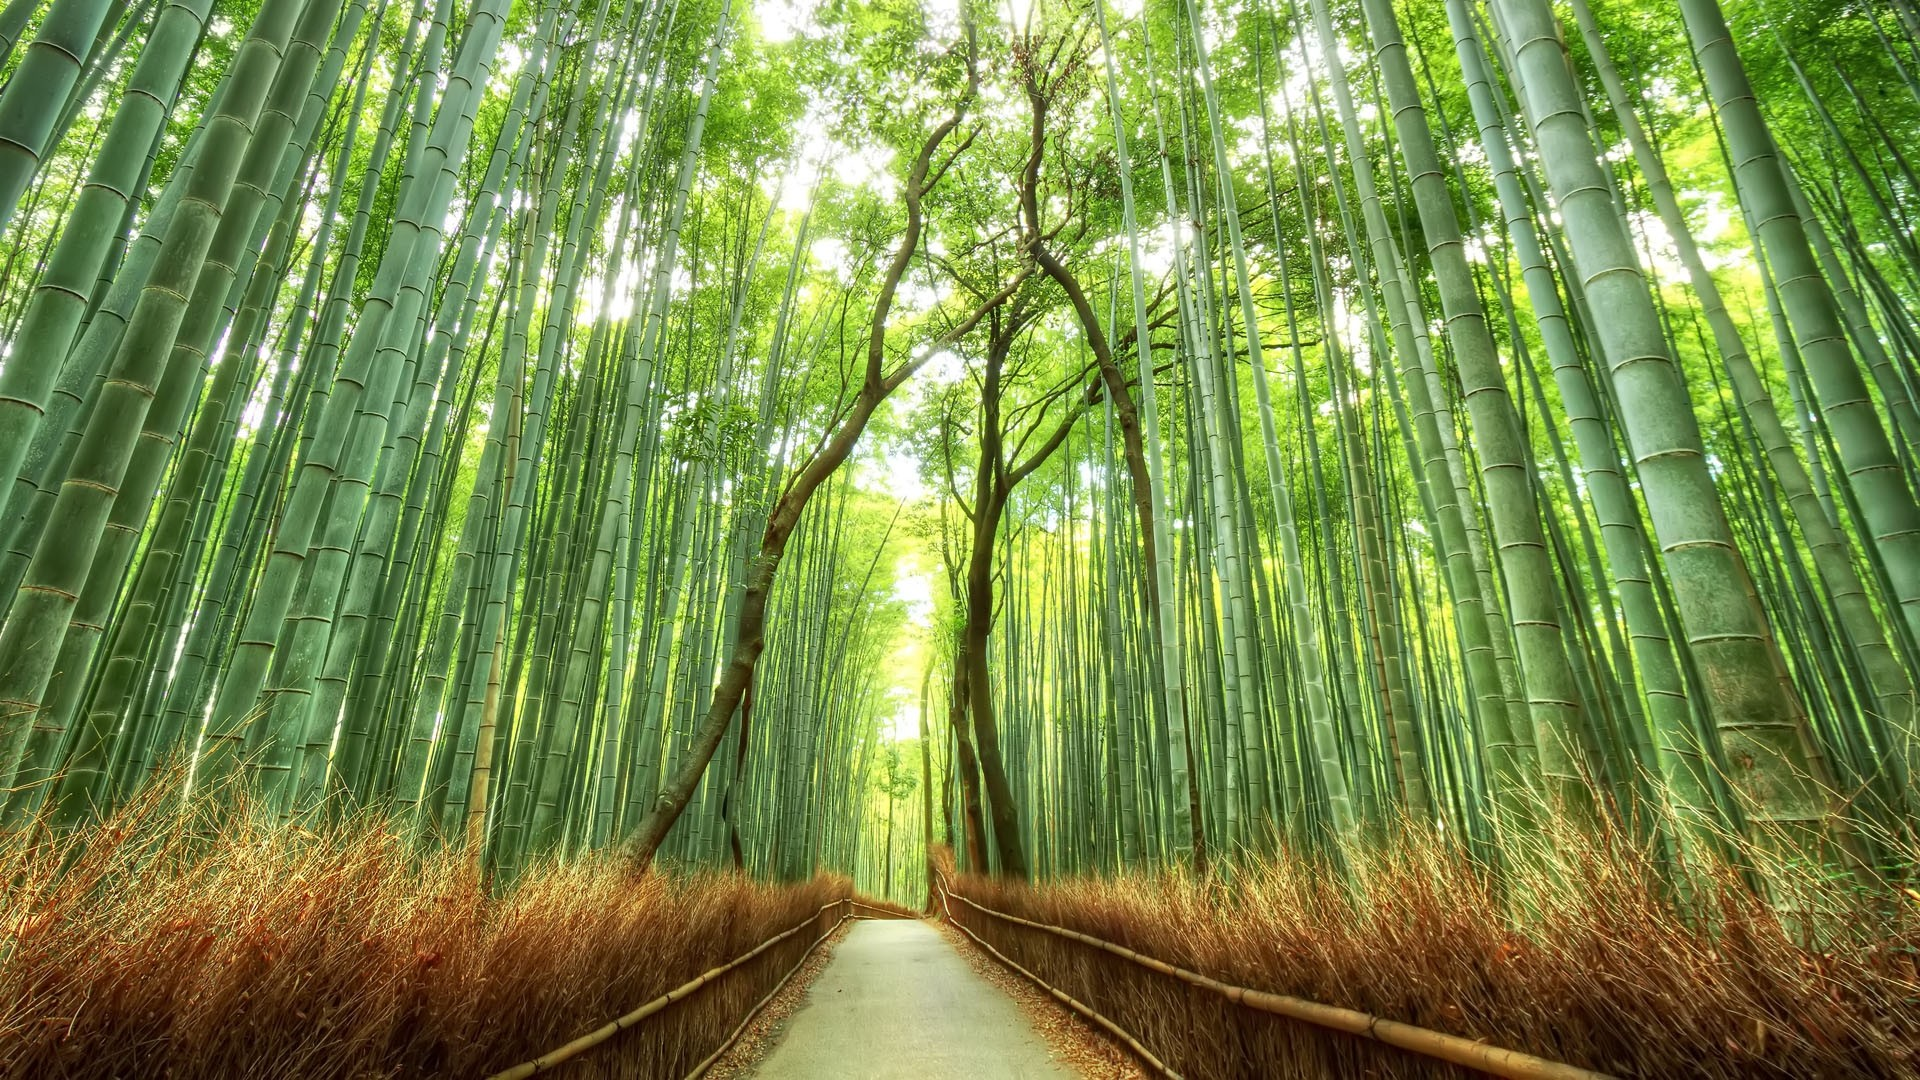 bamboo forest japan computer wallpaper (51+ images)